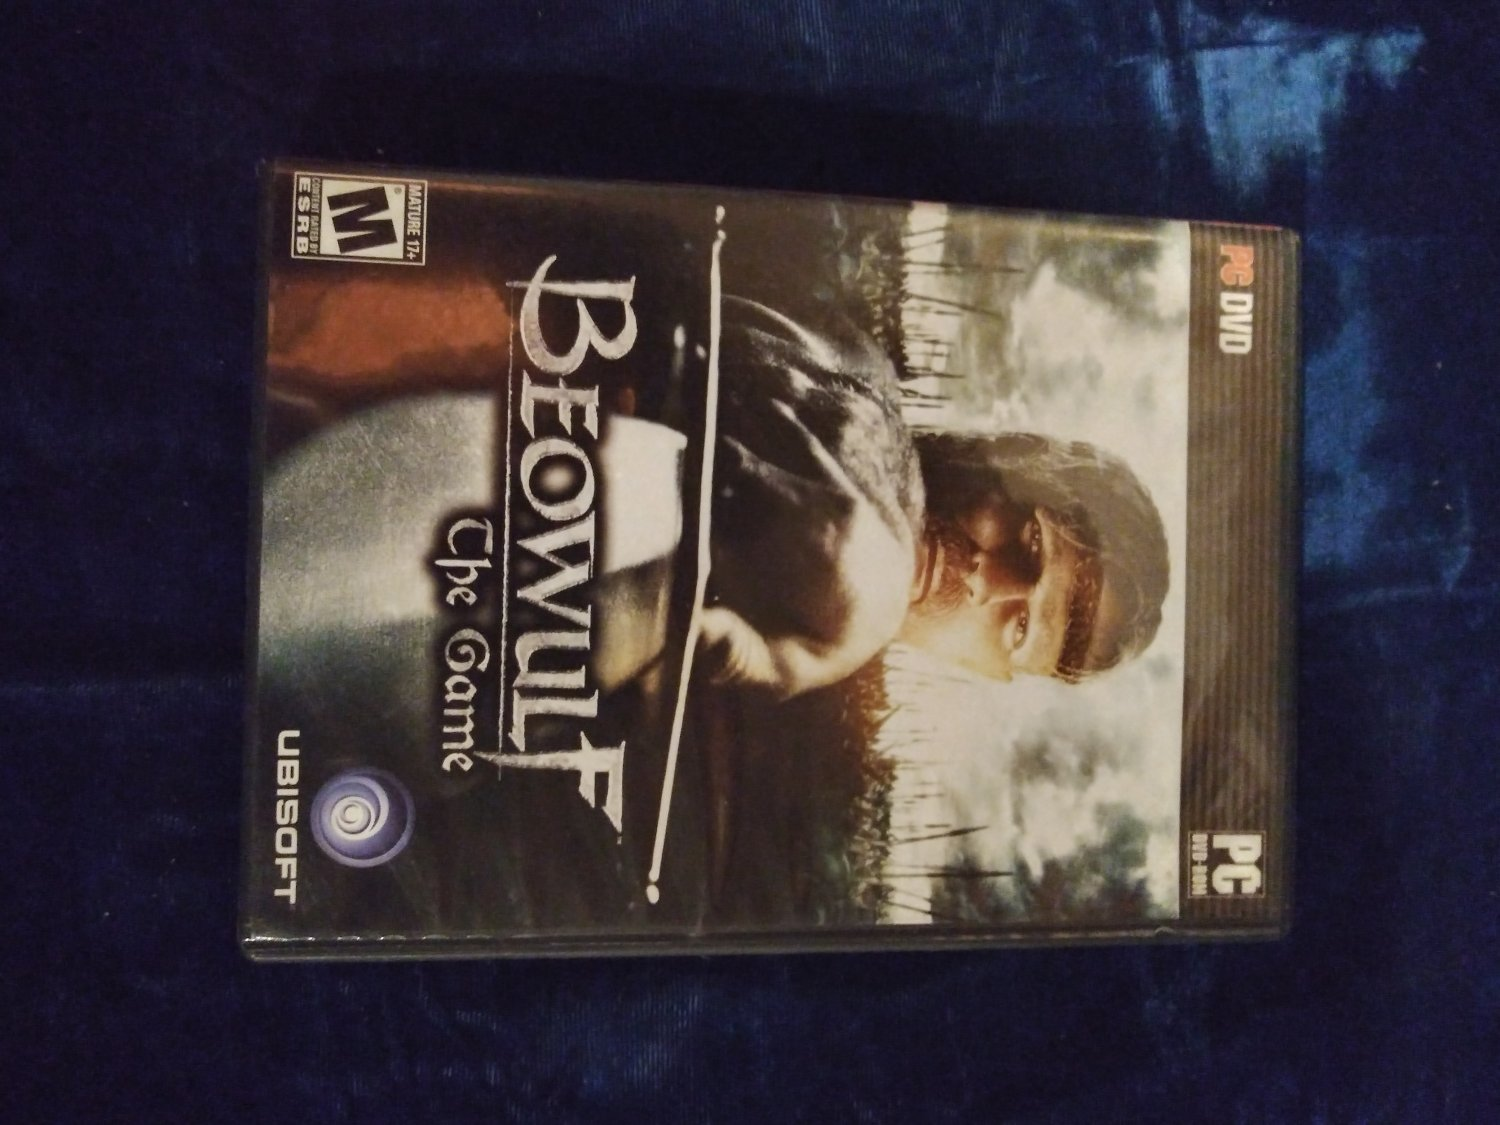 Beowulf the game 2007 cd pc game